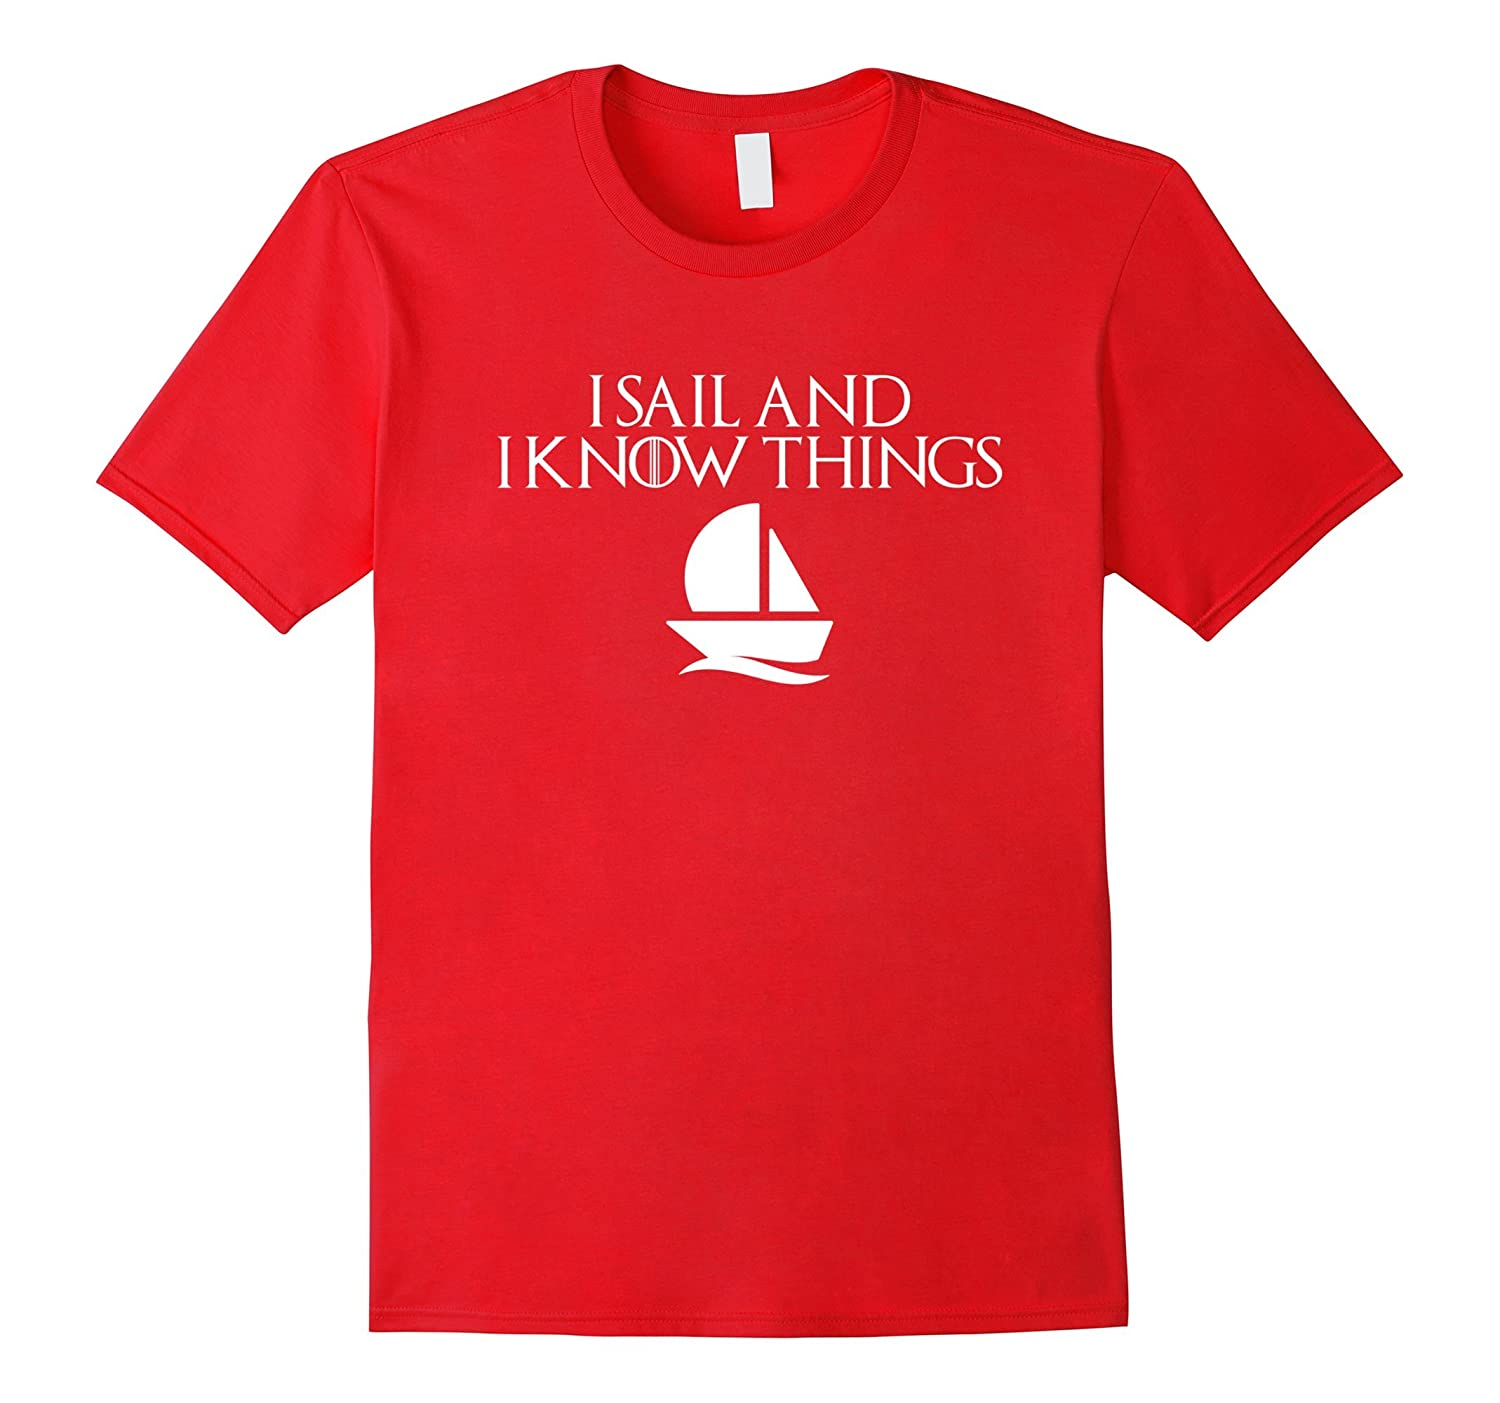 I Sail And I Know Things T-shirt Sailing Unisex Top Tee-Art